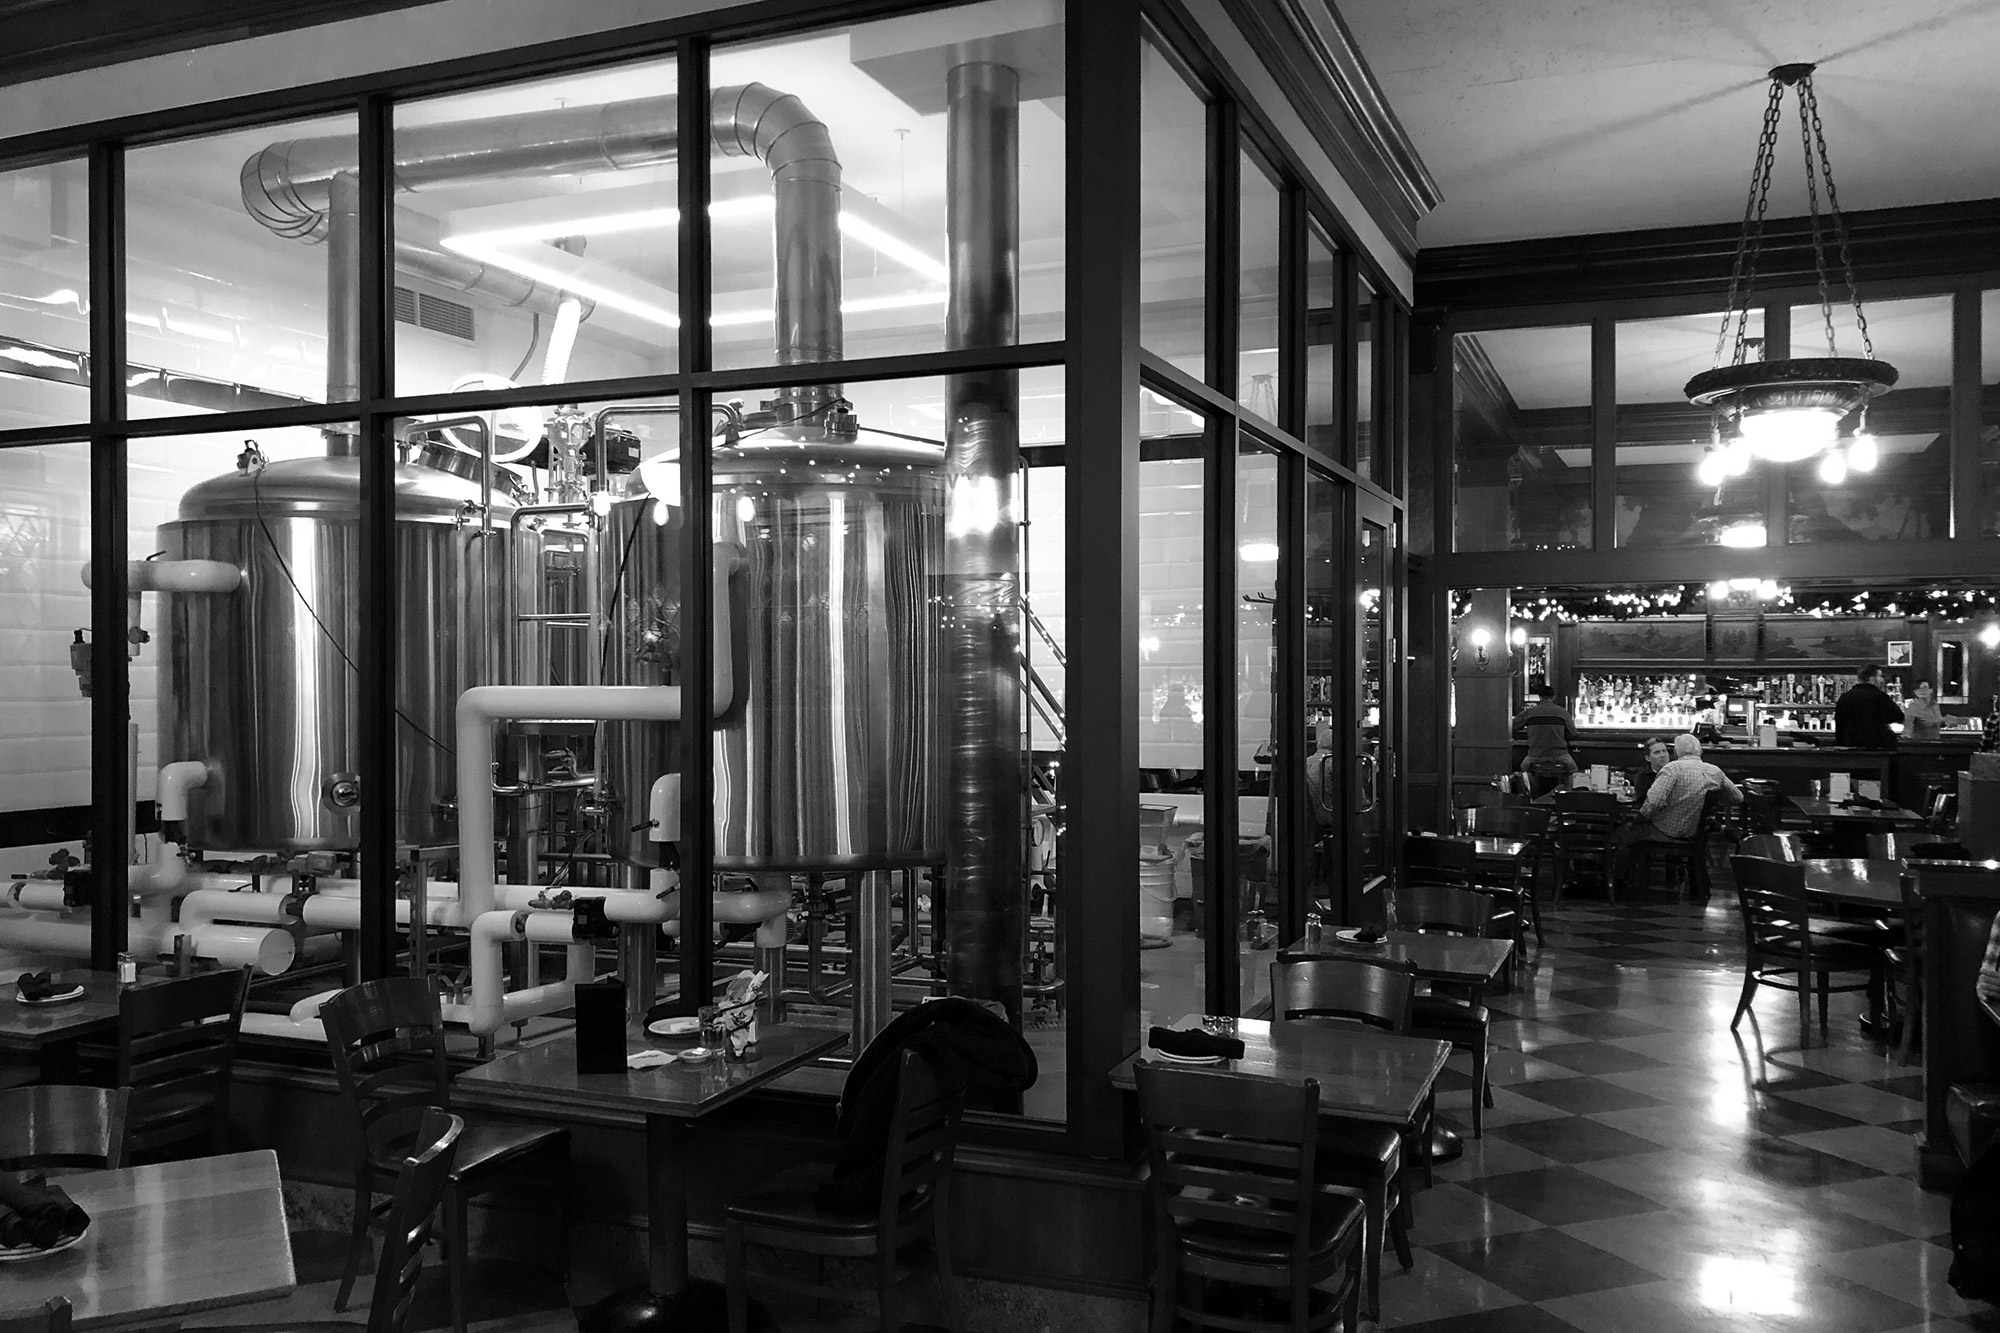 The new brew house, nestled in between the restaurant and revamped bar/taproom.